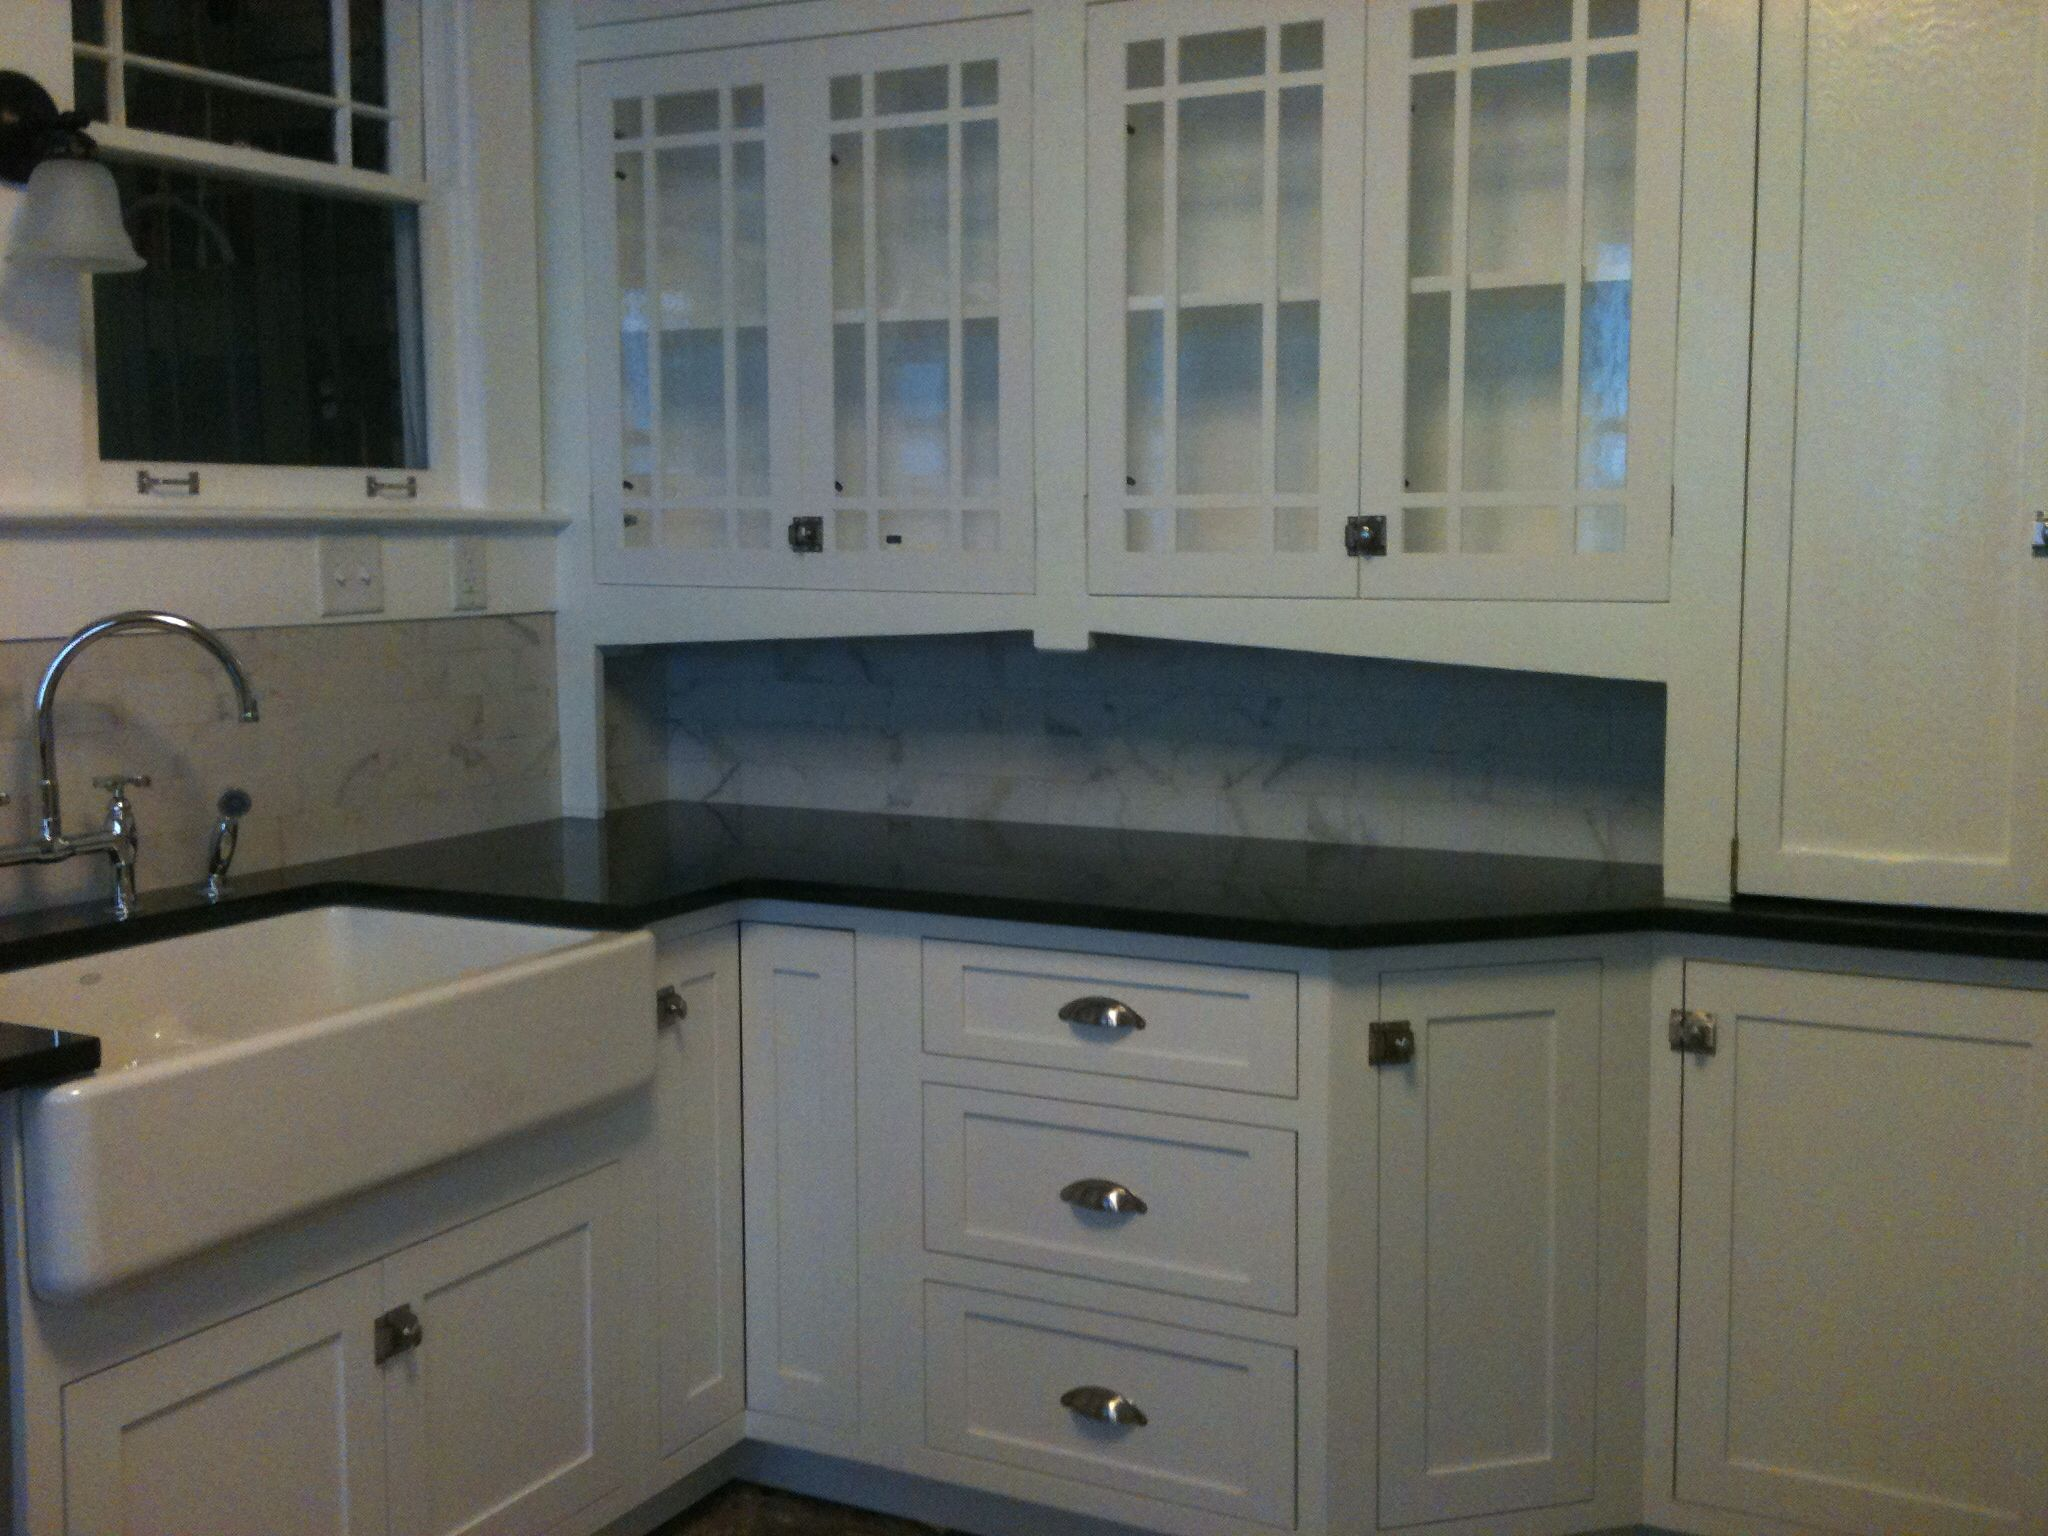 My 1920 s kitchen rehab is ing to her beautifully Restored